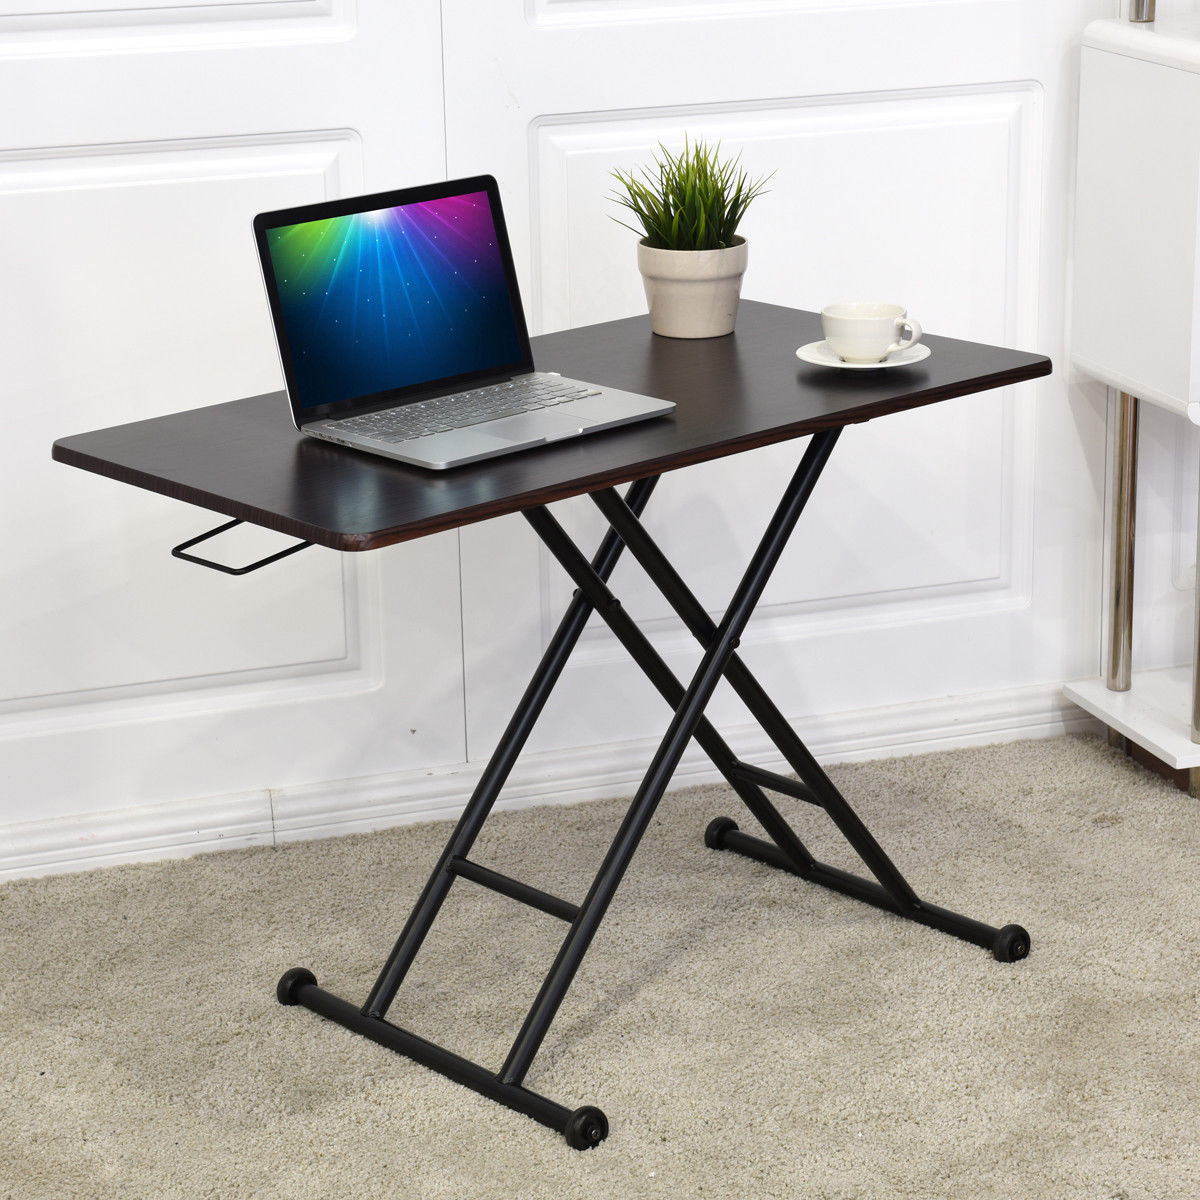 Giantex Height Adjustable Standing Desk Converter Sit-Stand Computer Laptop Workstation Modern Wood Furniture HW57064 стоимость